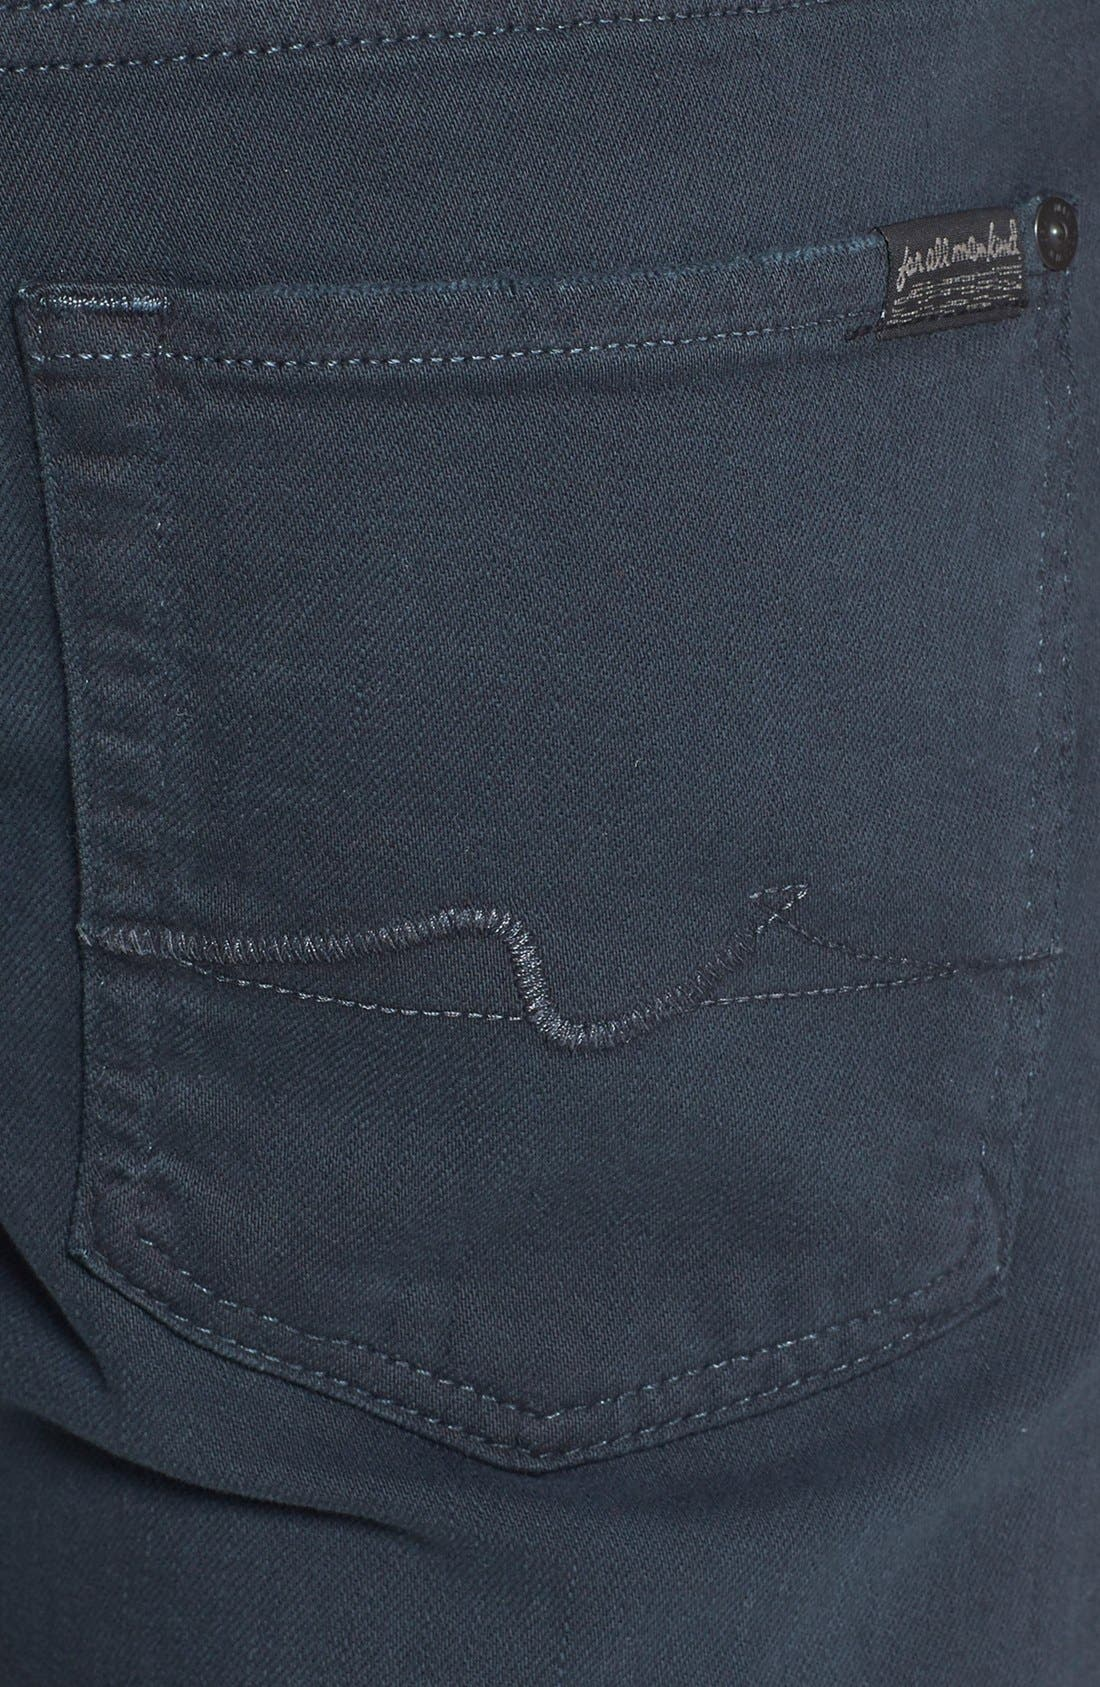 'Slimmy - Luxe Performance' Slim Fit Jeans,                             Alternate thumbnail 3, color,                             004